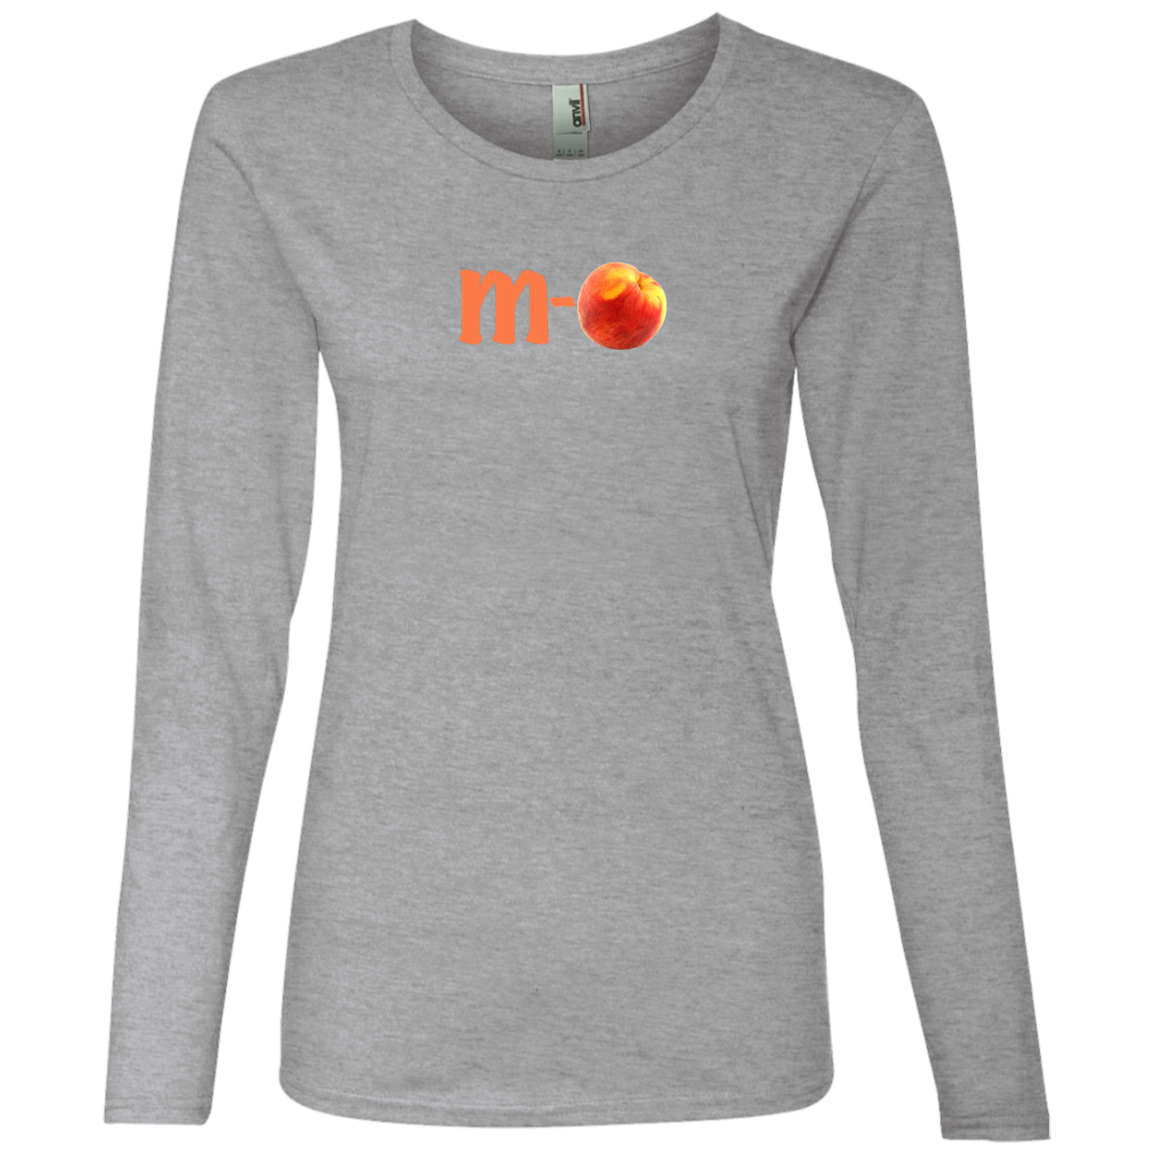 """M-PEACH"" Lightweight Ladies Long Sleeve t-Shirt - FabulousLife"